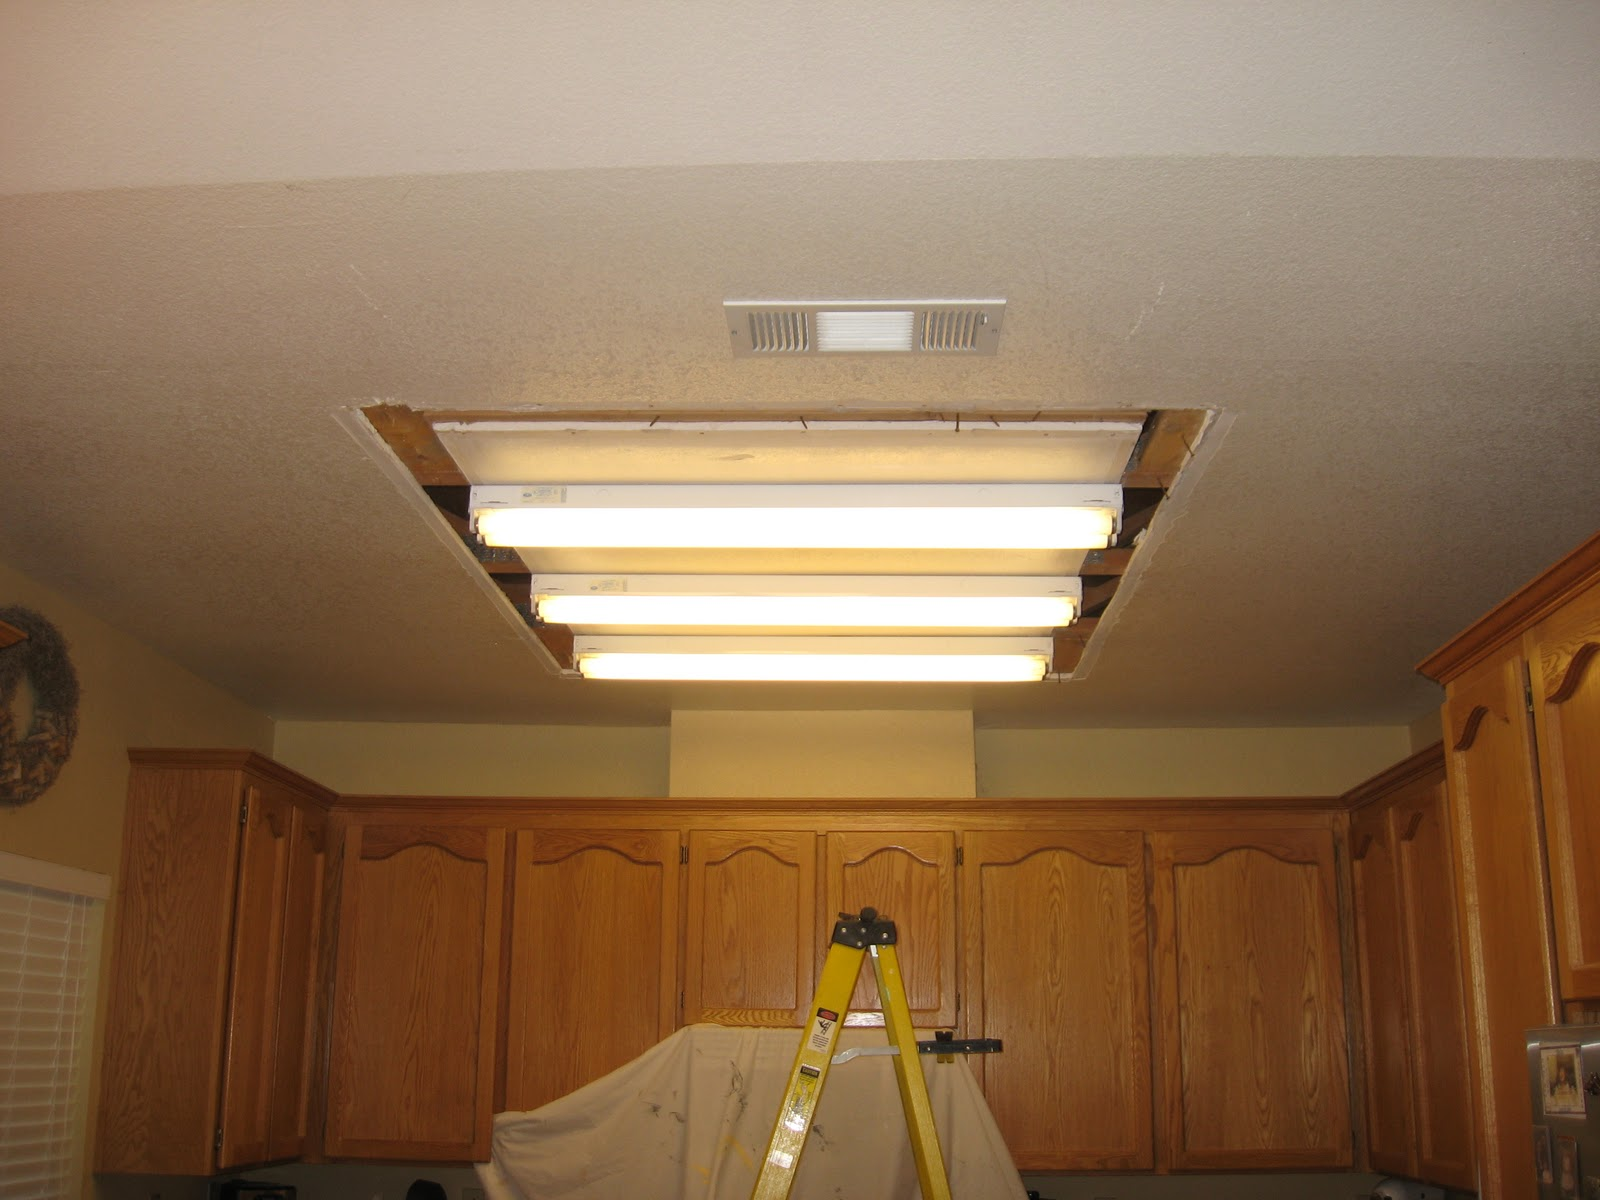 Led Kitchen Ceiling Light Fixtures Kitchen Lighting Ceiling Fixtures 21471320170509 Ponyiexnet